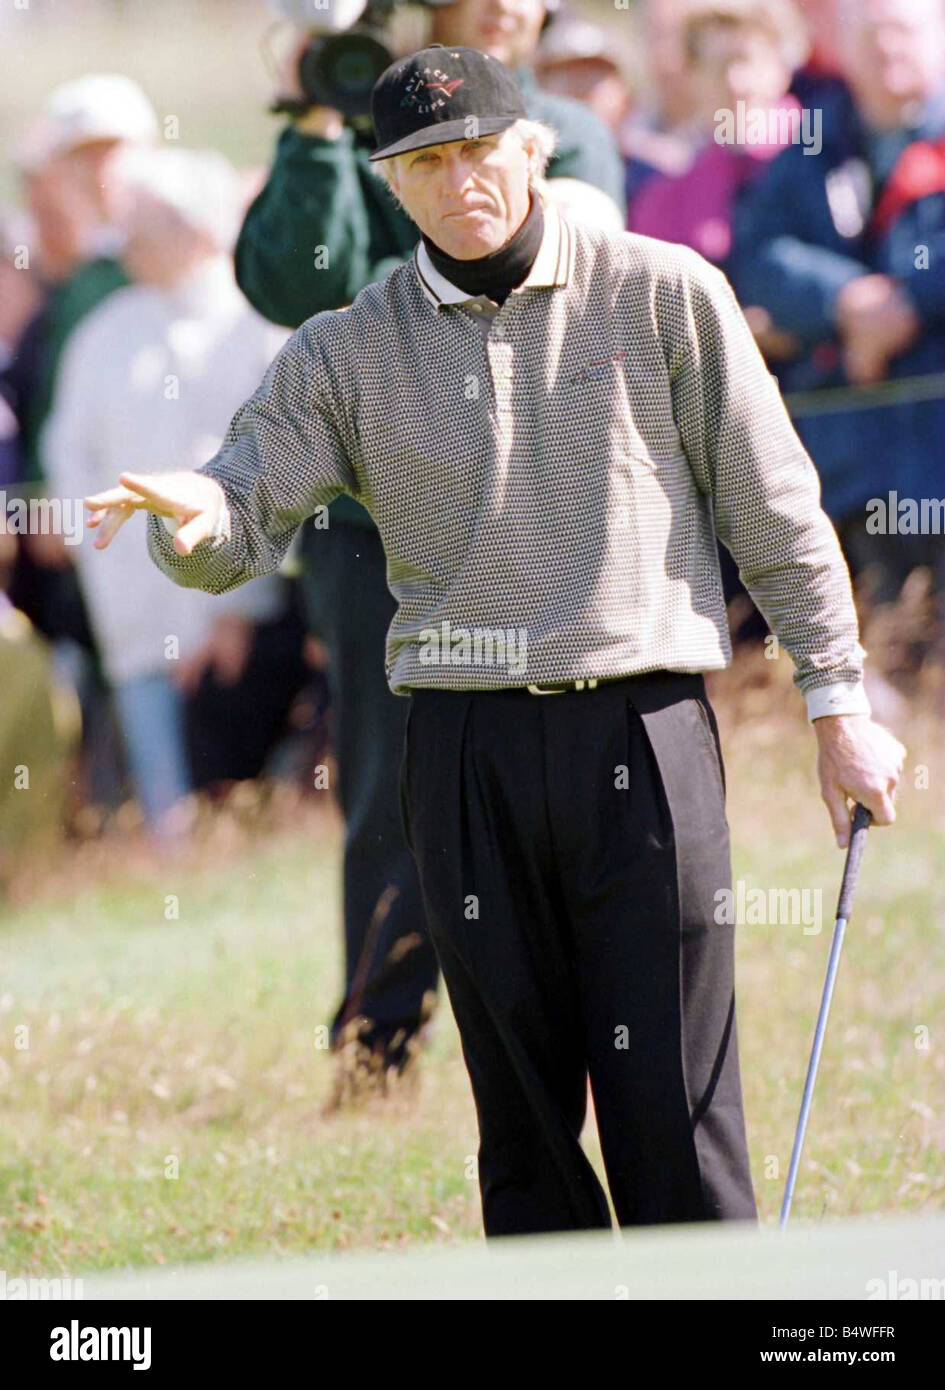 Greg Norman pointing right hand July 1997 - Stock Image